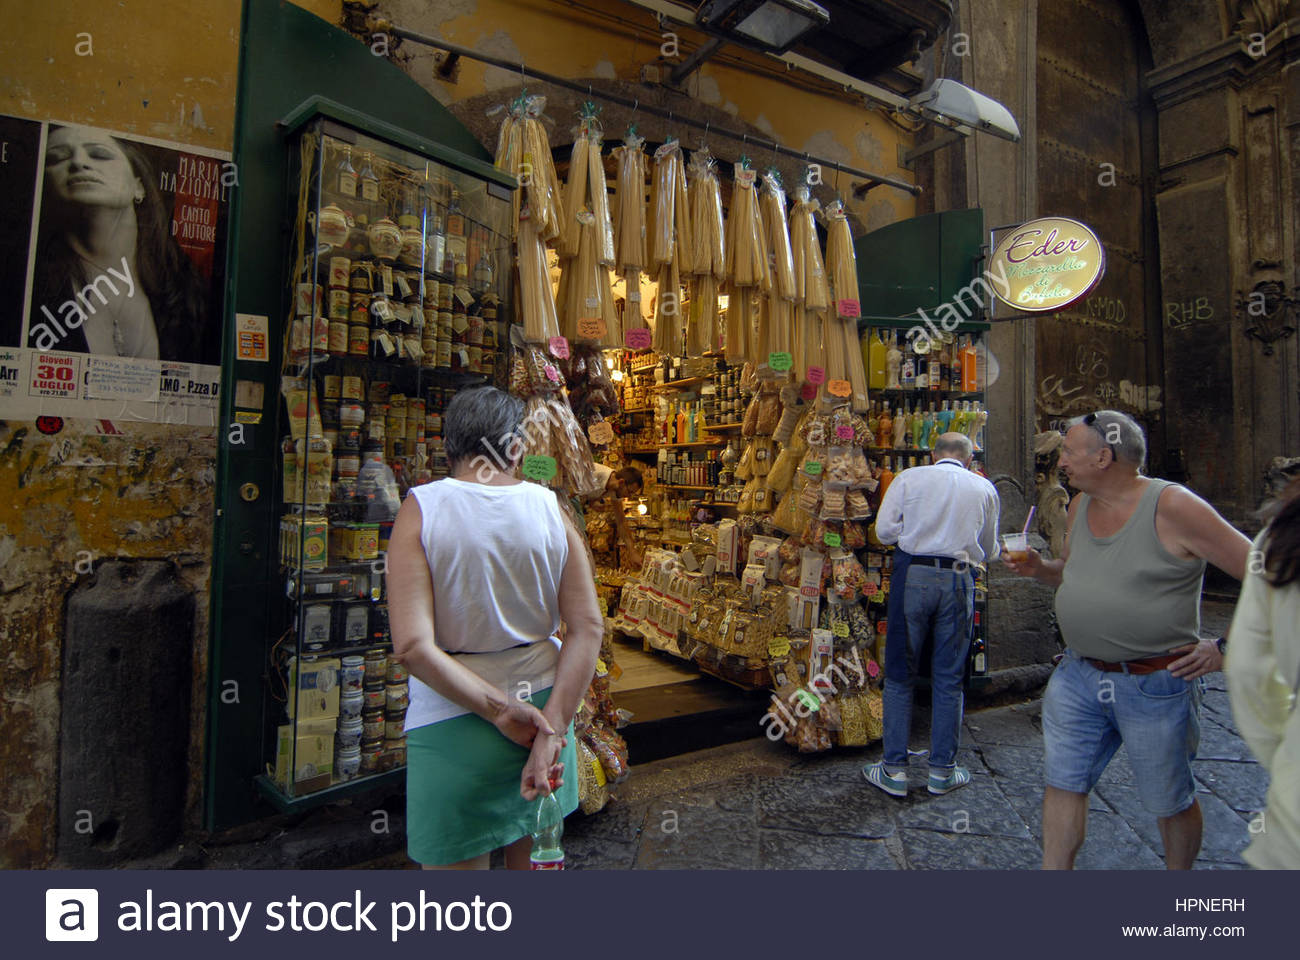 shop of gastronomic typical products,napoli - Stock Image